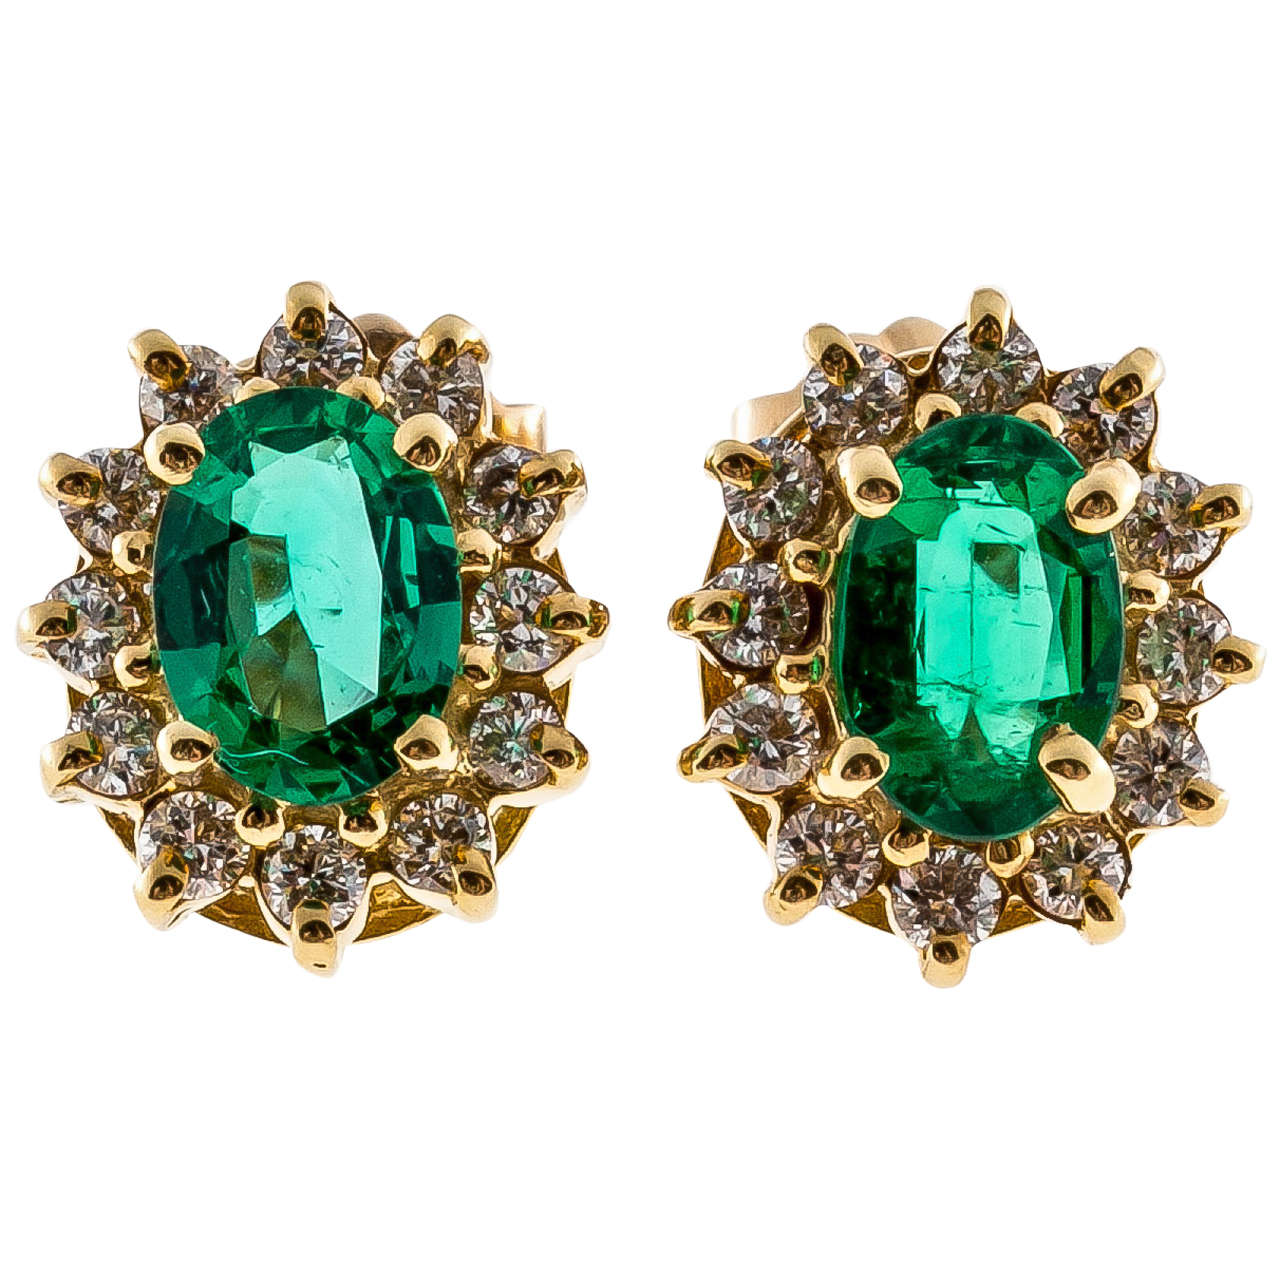 earrings stud image sonia pinkperfection emerald product accessories green statement